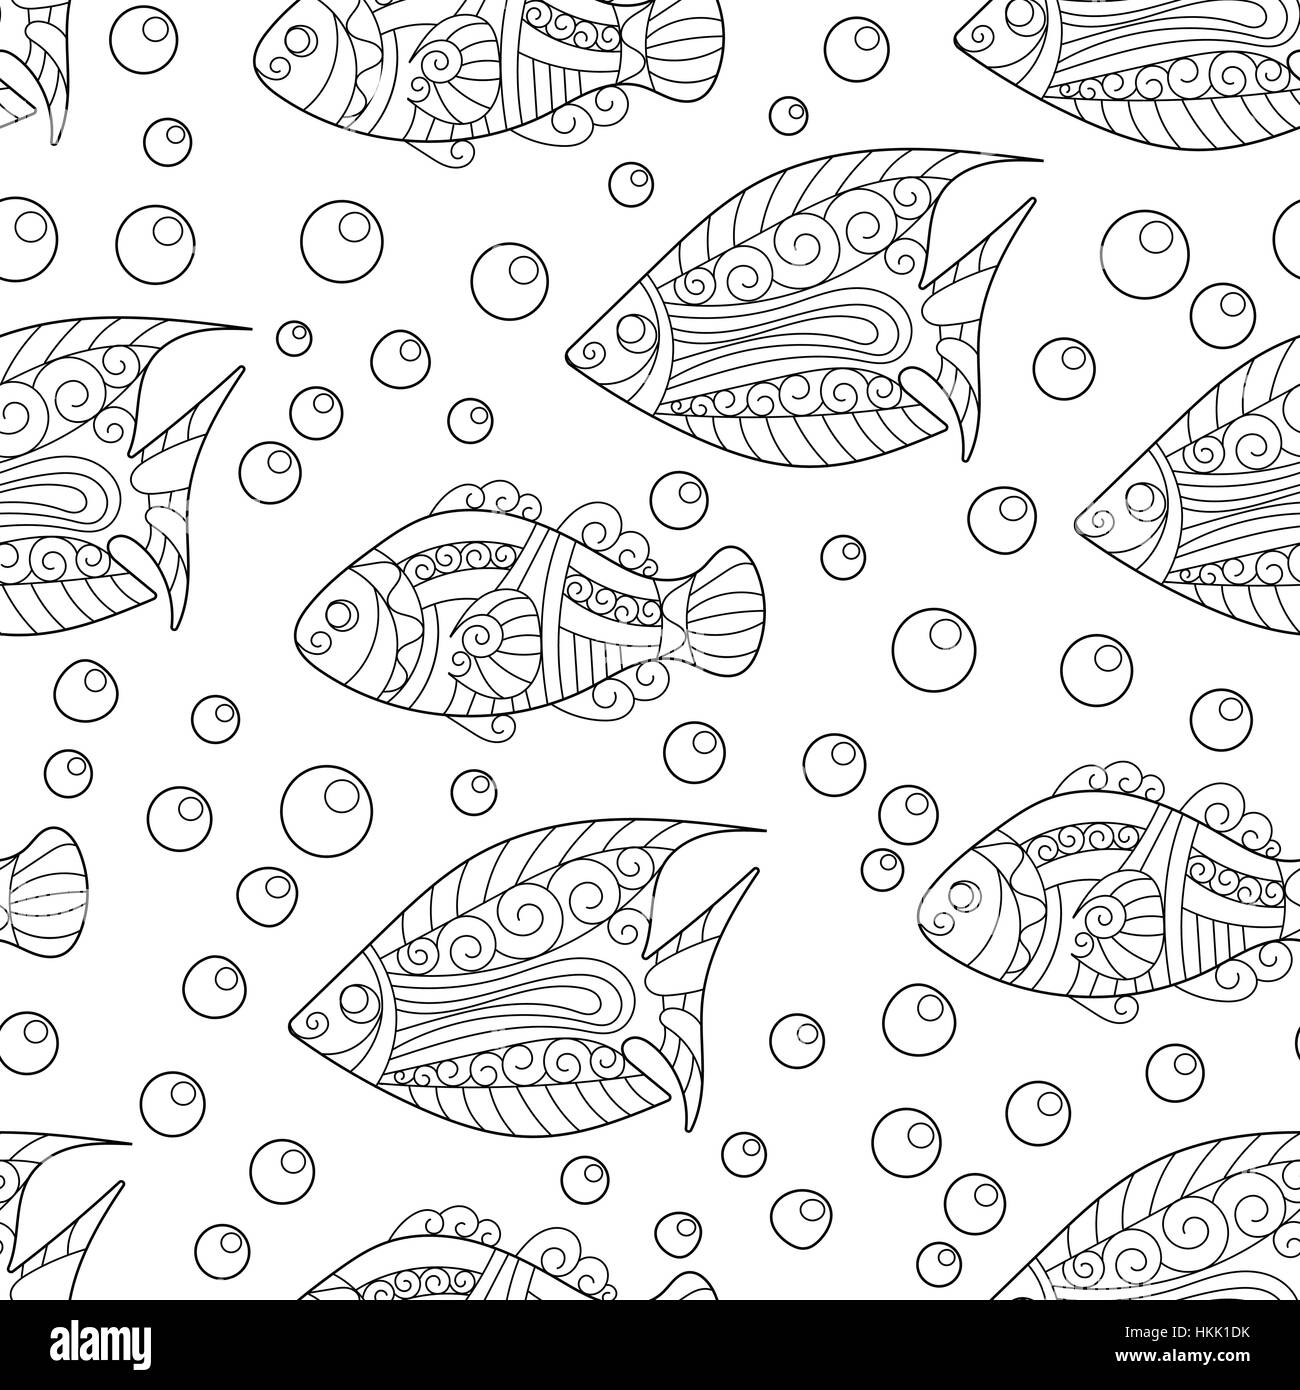 Coloring Book Pages Adult Stockfotos & Coloring Book Pages Adult ...